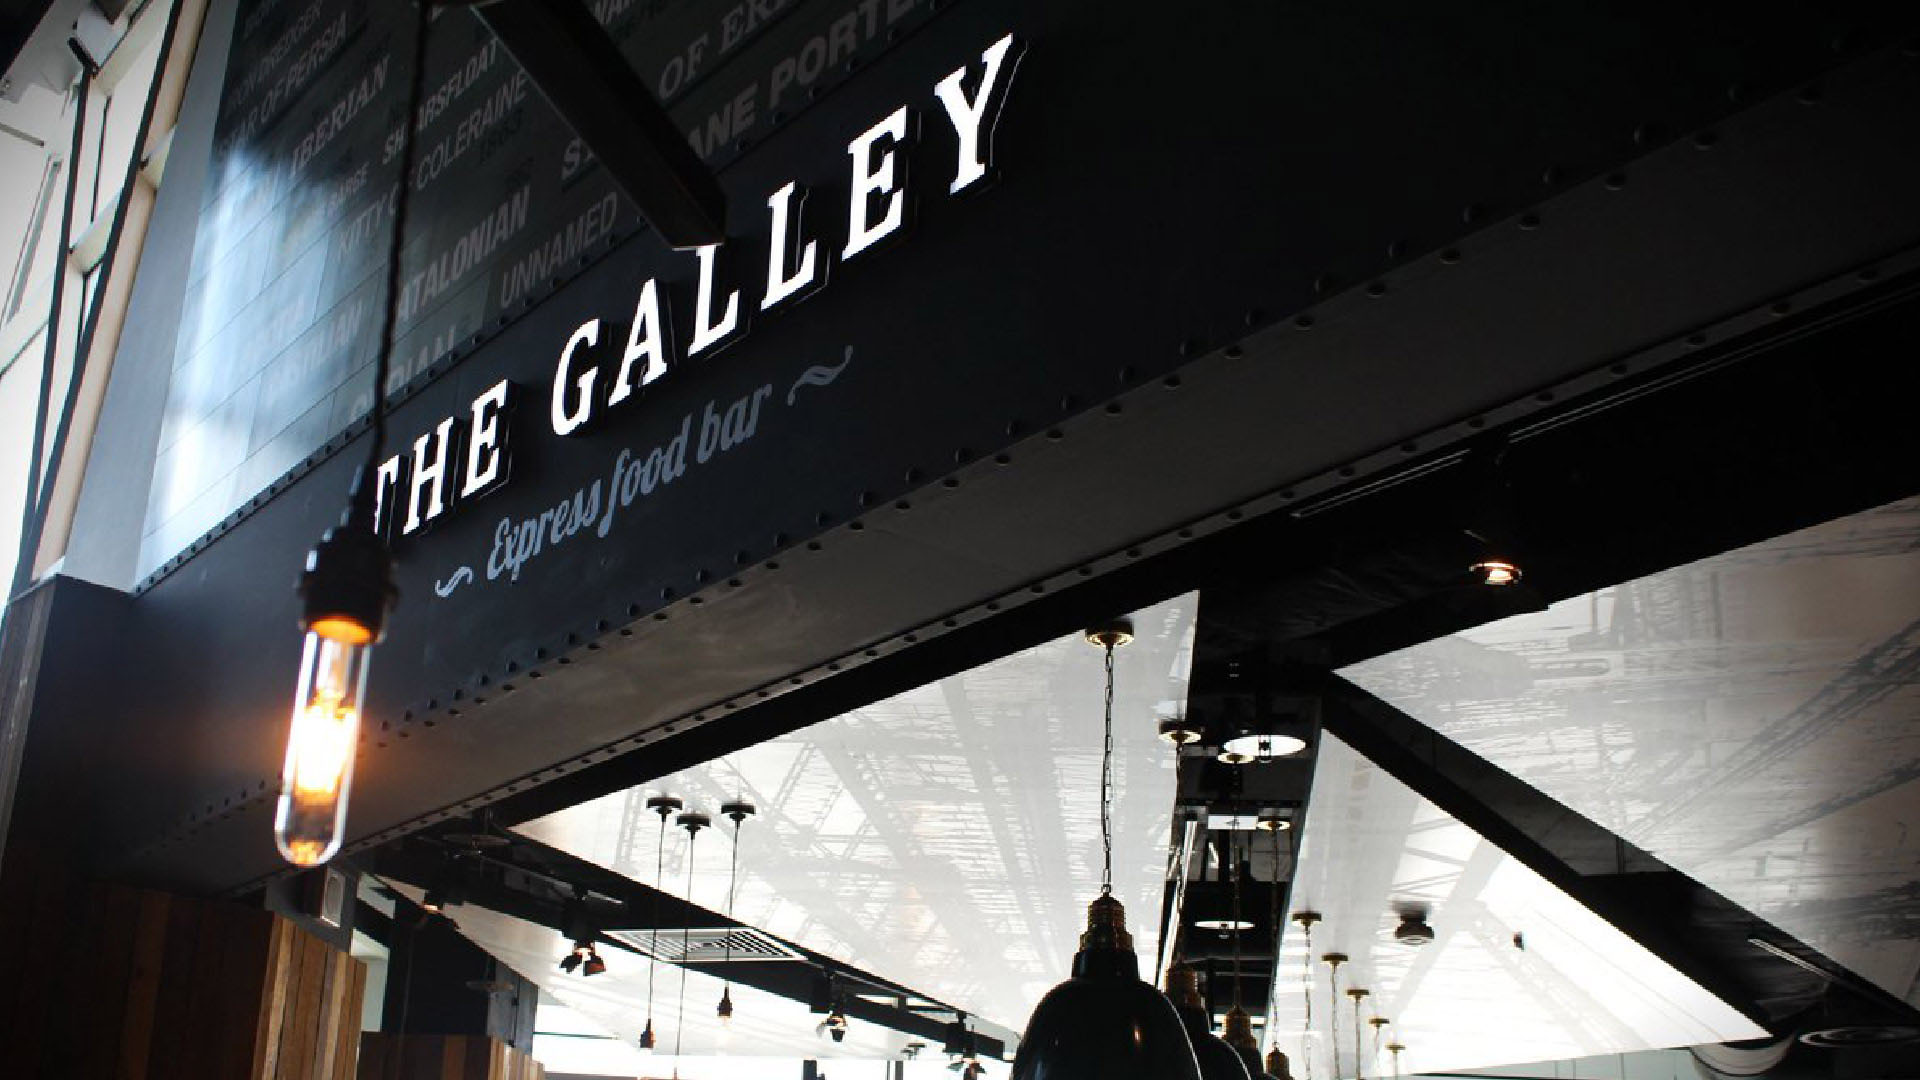 Maritime Mile - 4 Hour Itinerary - 4 - The Galley Bar